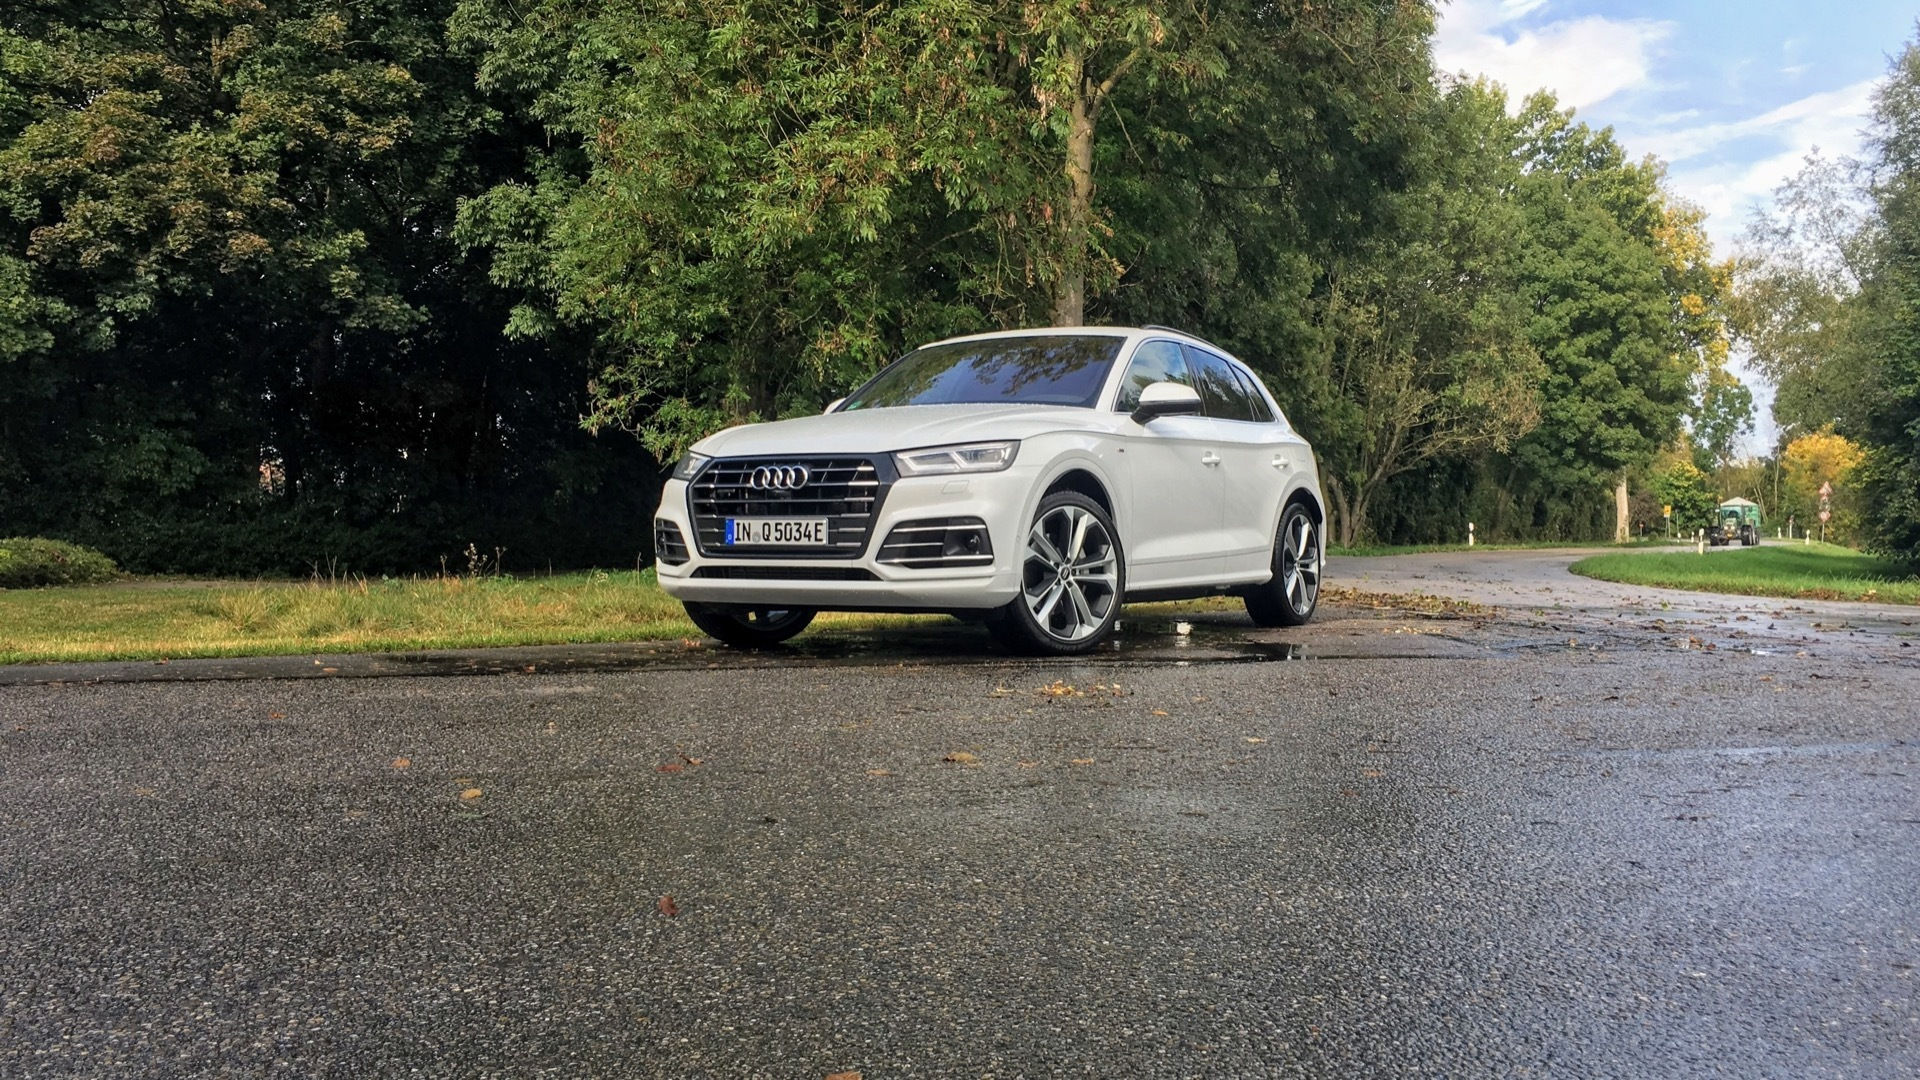 91 Great Audi Hybrid Range 2020 Specs and Review with Audi Hybrid Range 2020